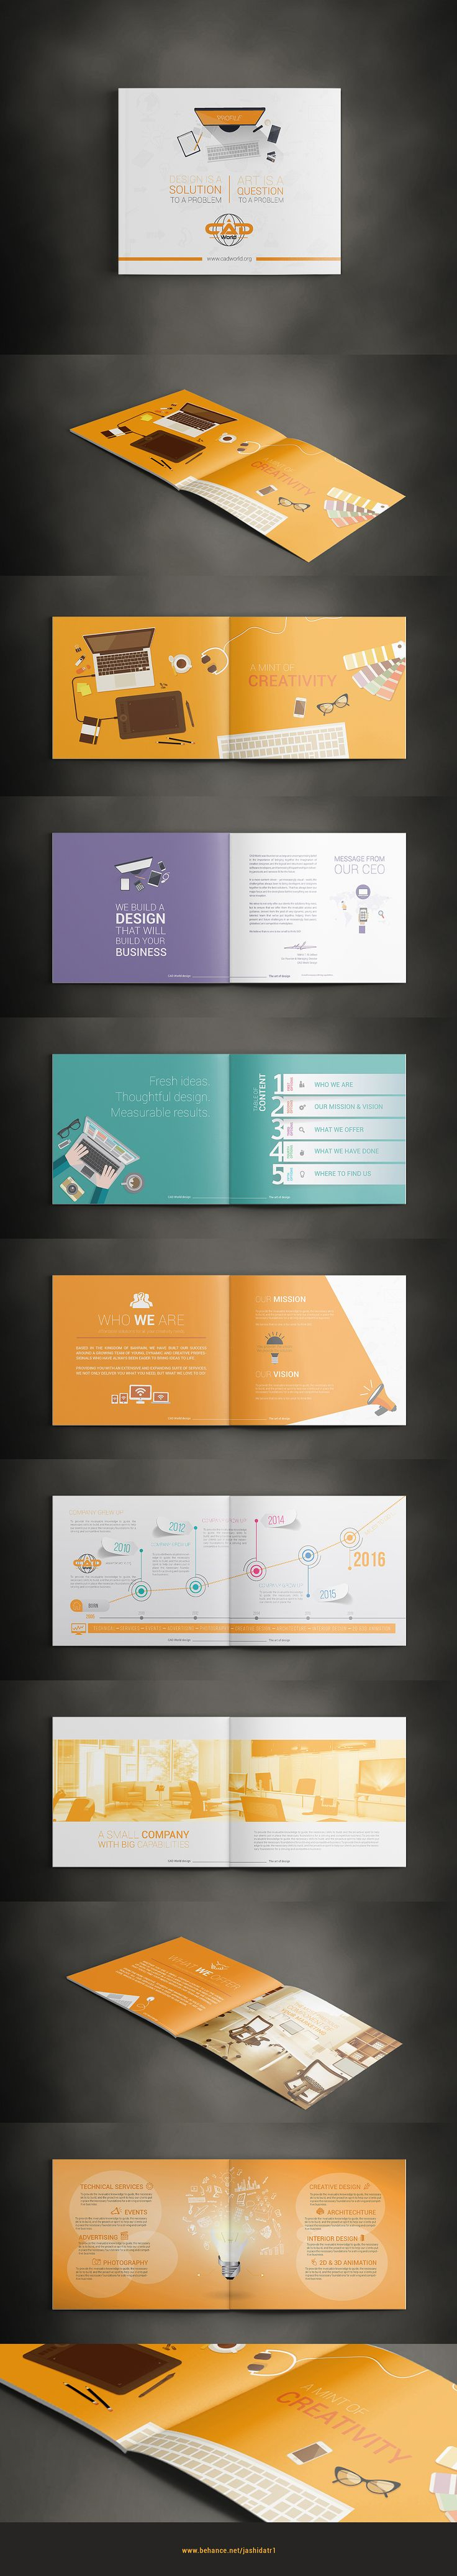 Creative Company Profile on Behance                                                                                                                                                                                 More